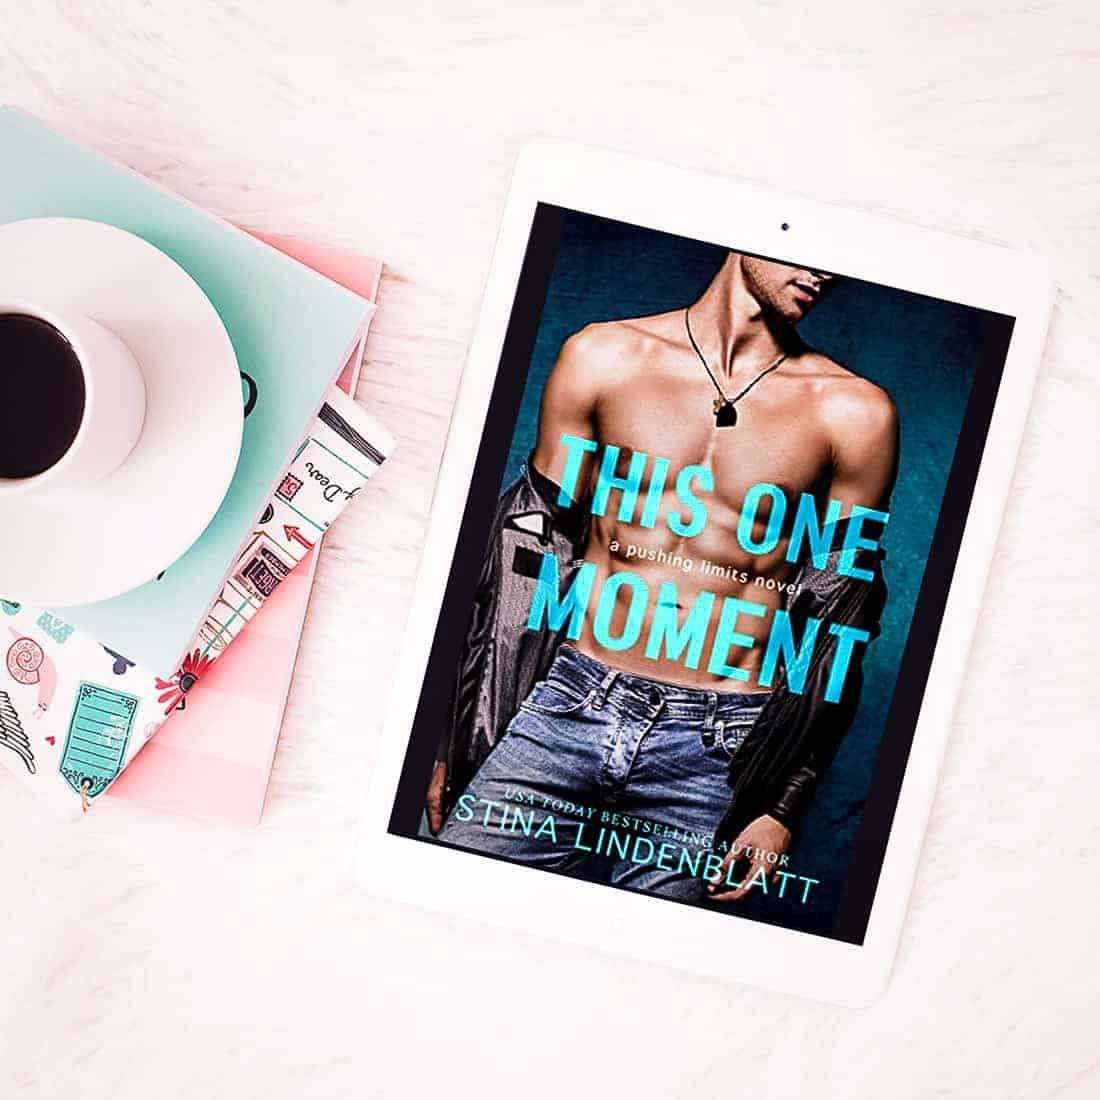 This One Moment-An Interview with Stina Lindenblatt-featured